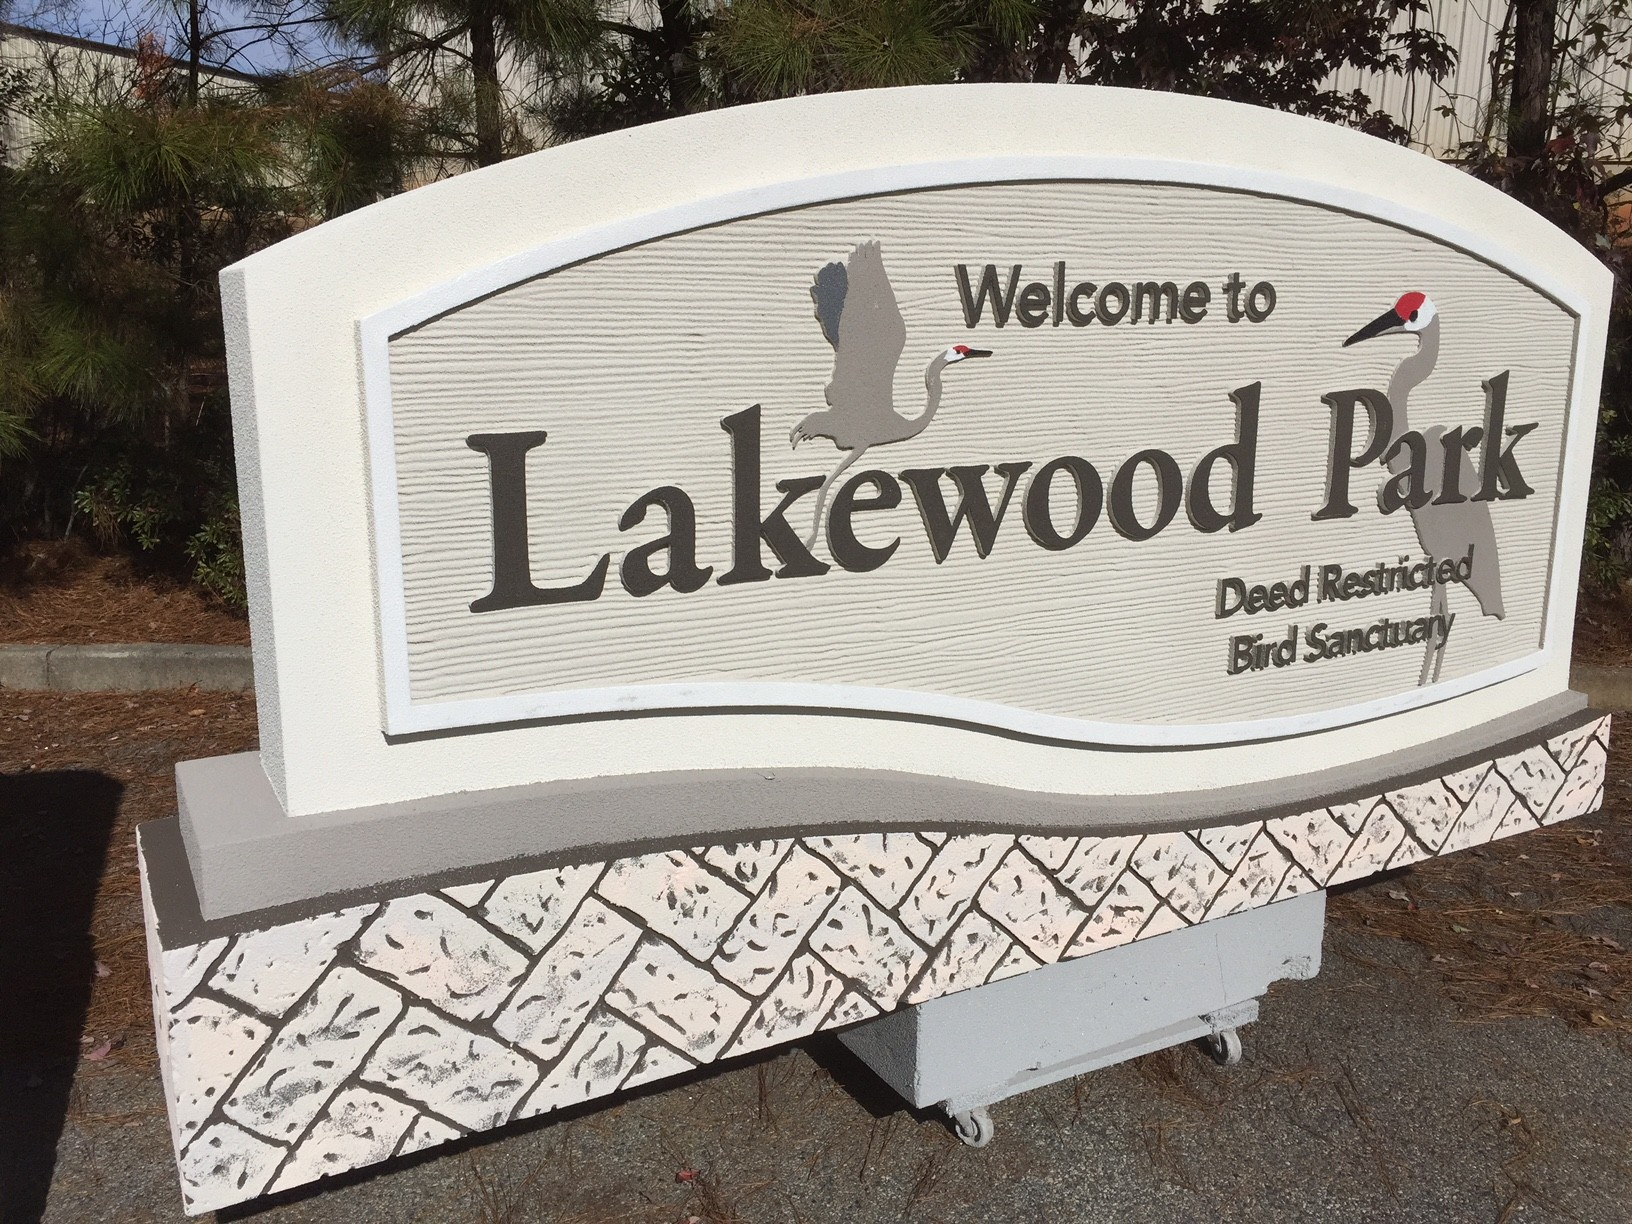 Lakewood Park Neighborhood Entrance Sign and Bird Sanctuary